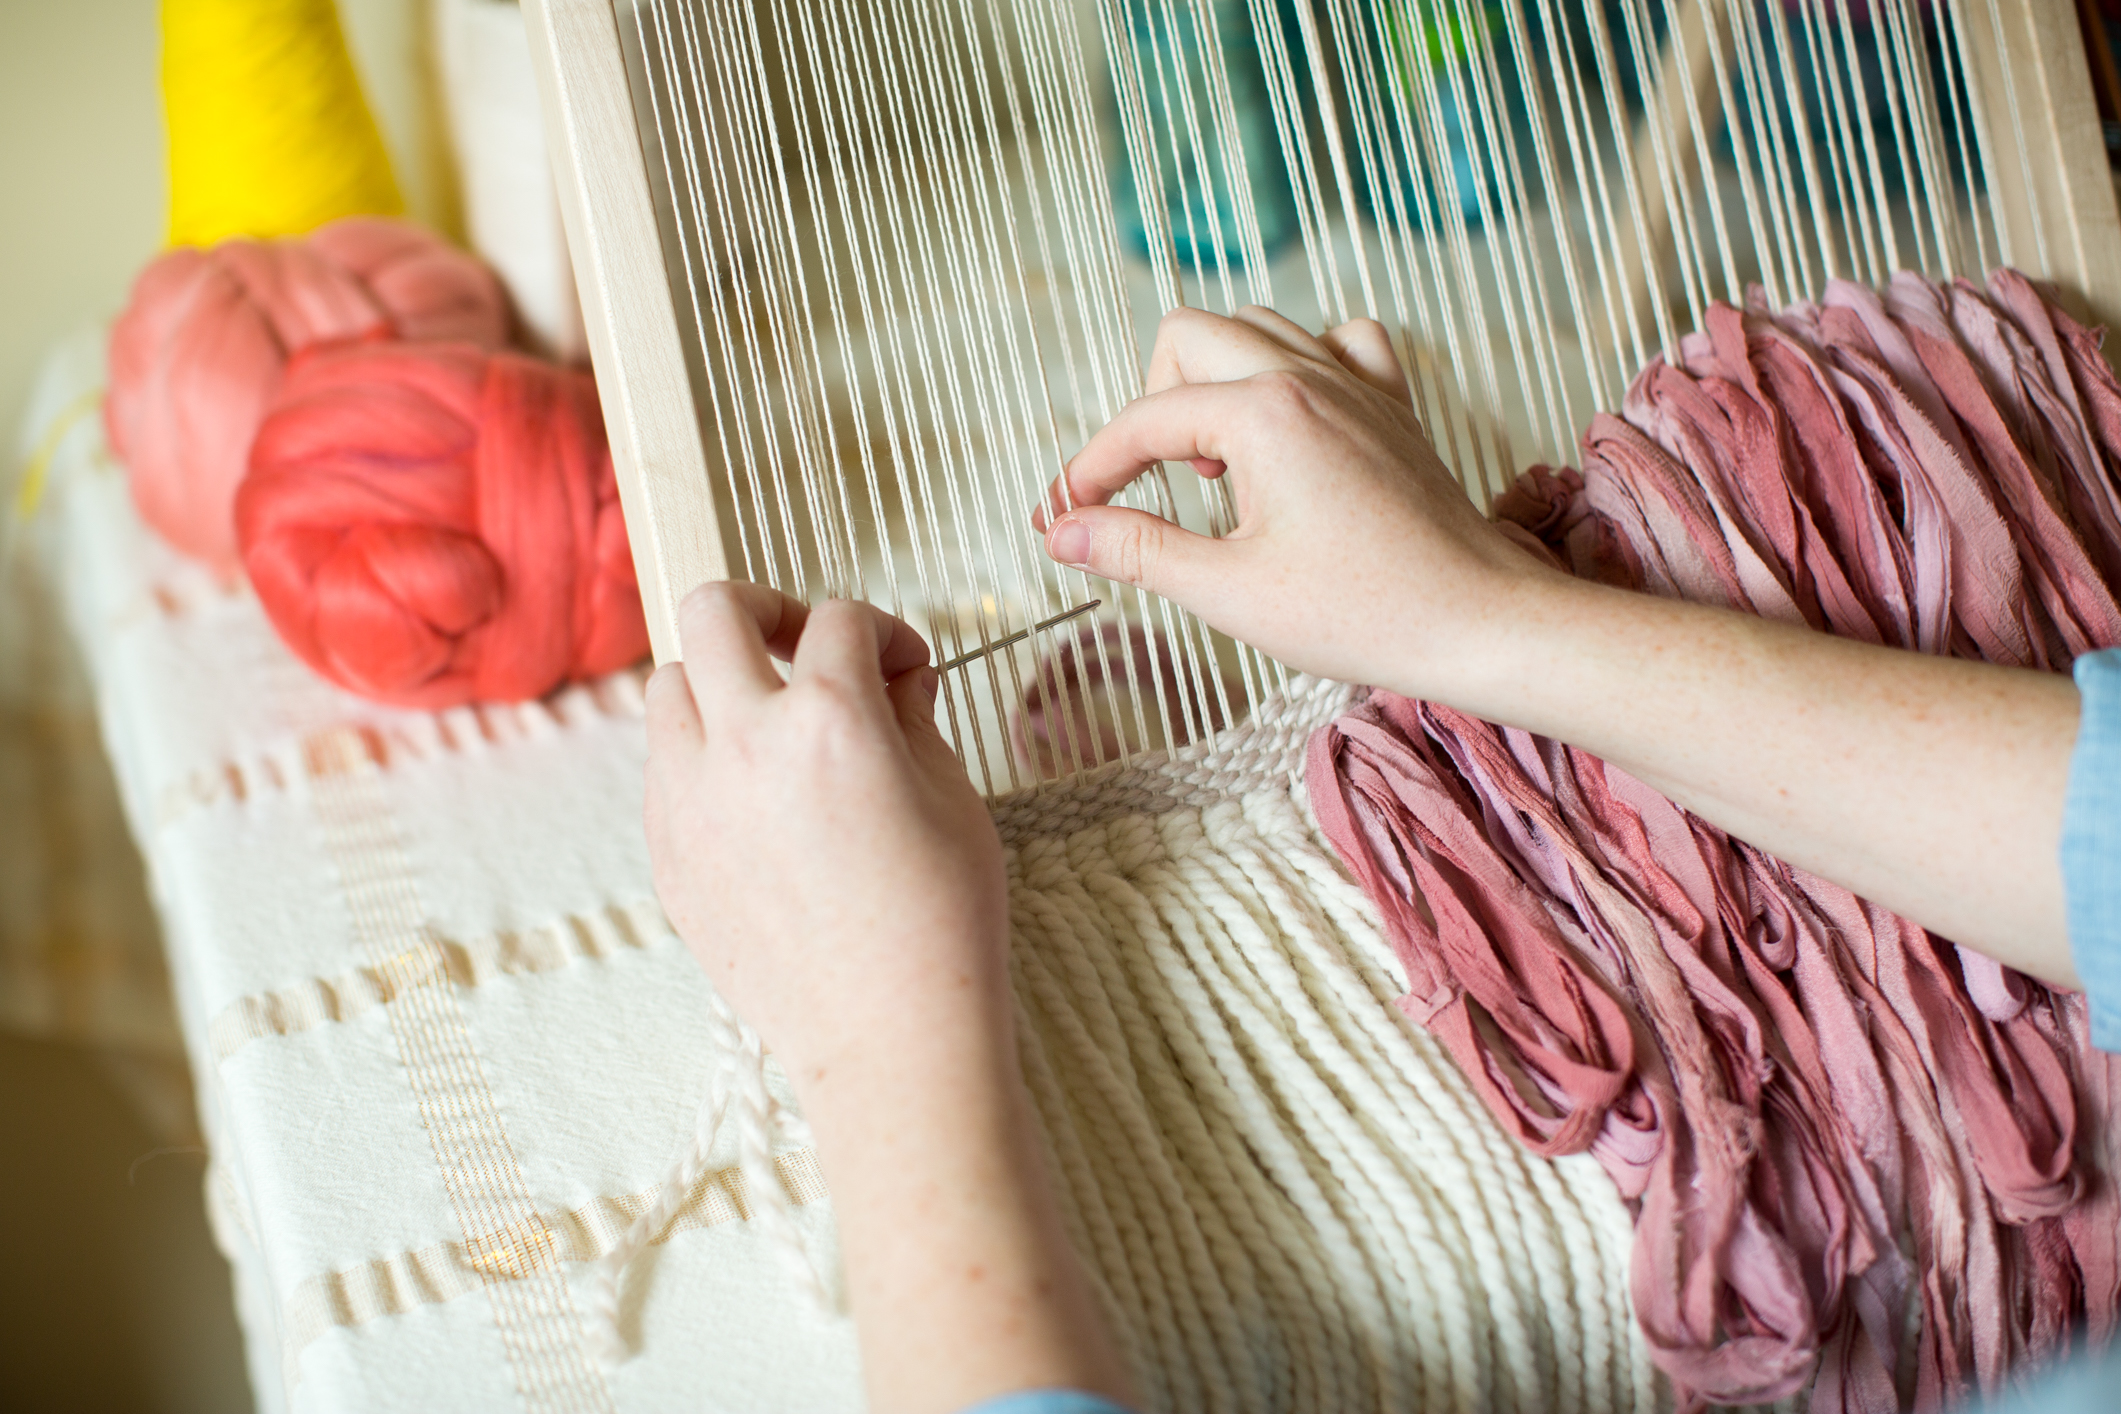 Let's create something just for you. - I love working with customers to create that special piece that they'll treasure for years to come. Let's weave a little joy into your home.